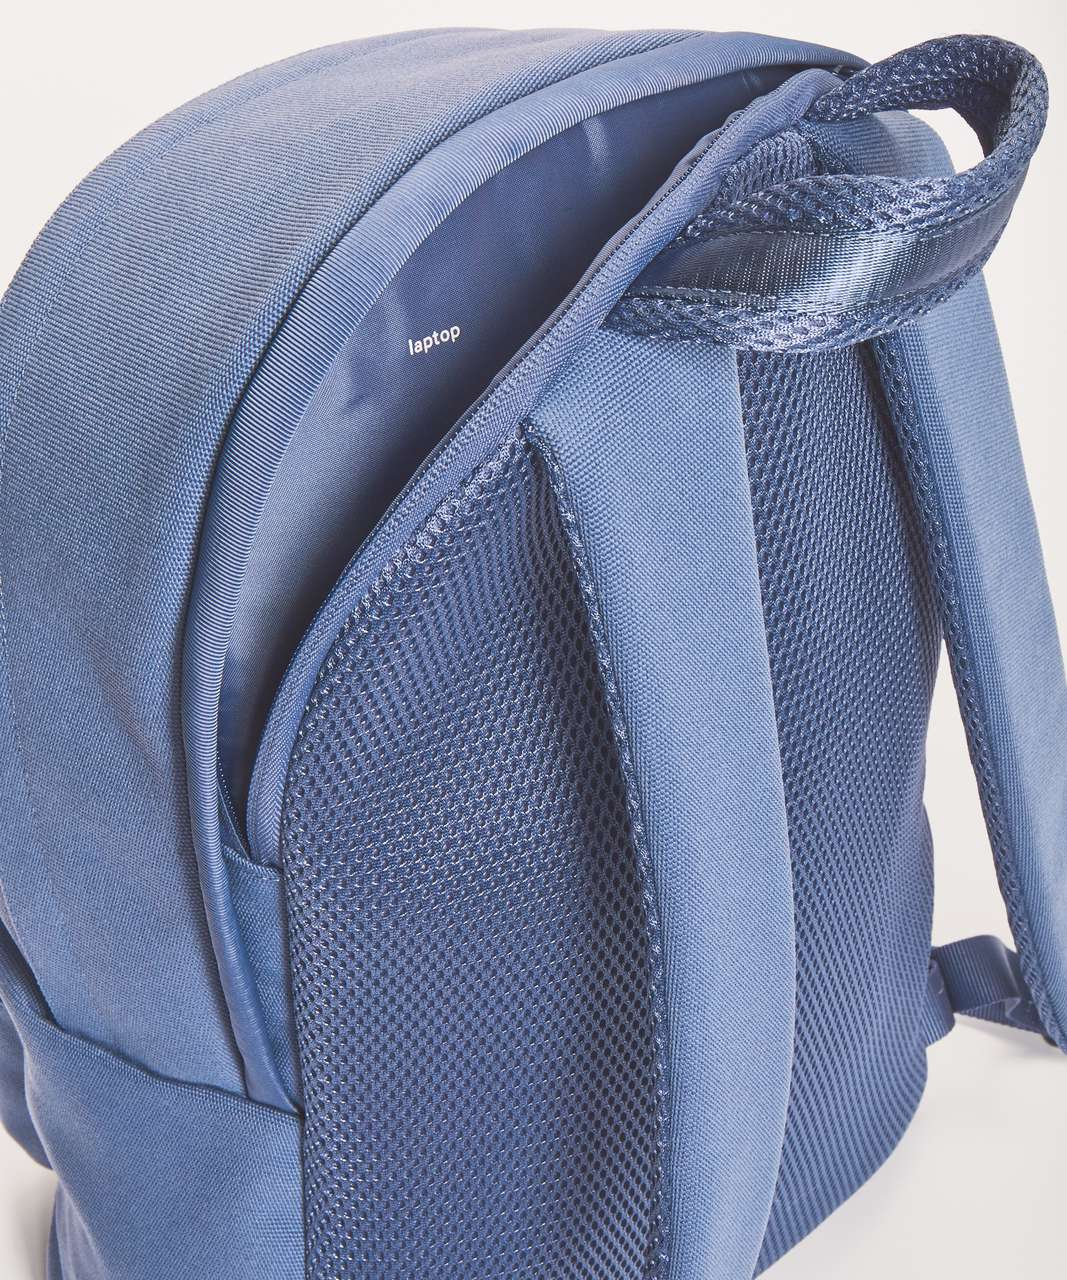 Lululemon Everywhere Backpack *17L - Shade